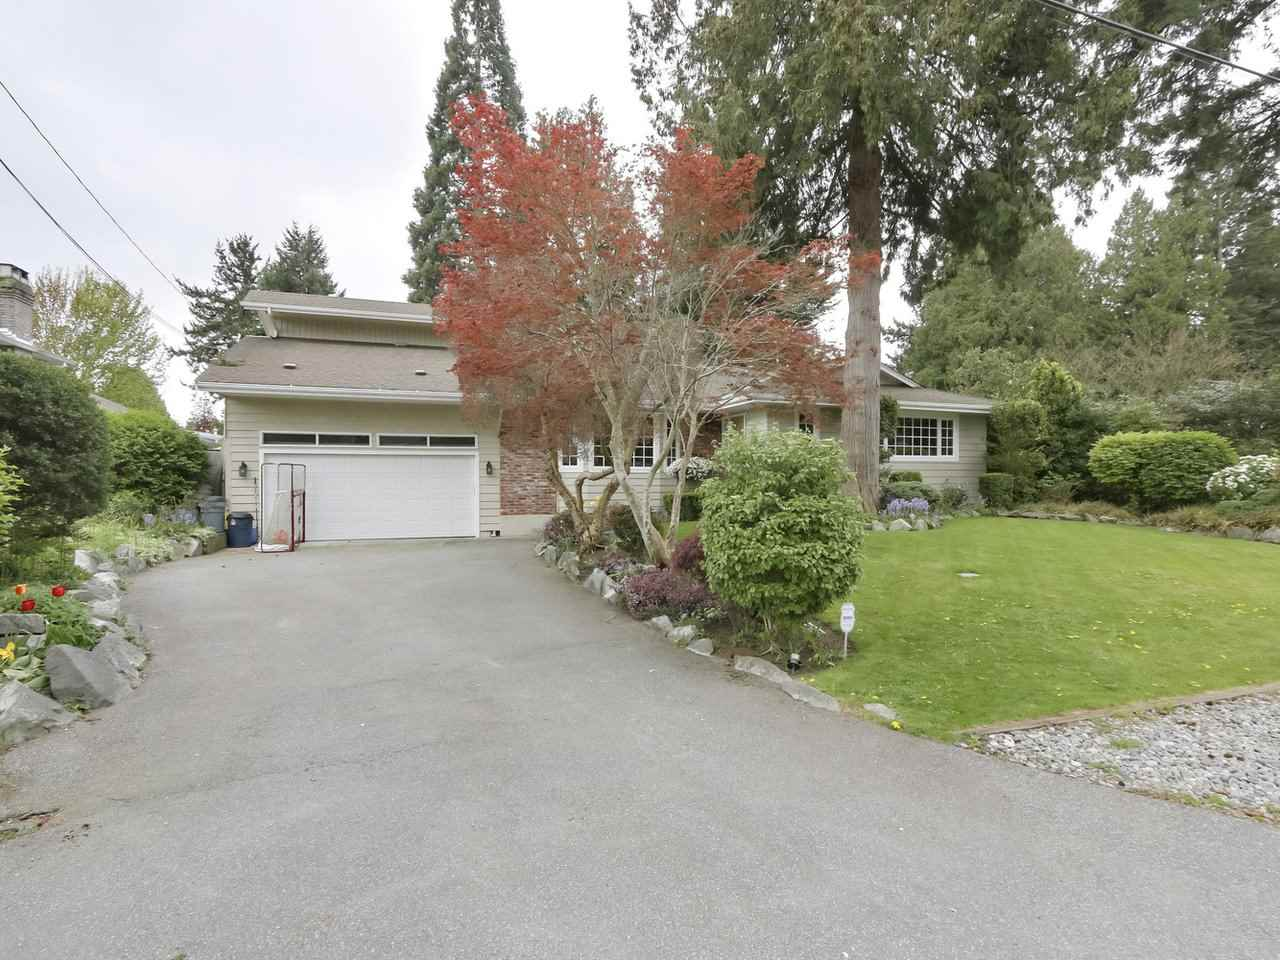 Lovely 3 level split home in the heart of sunny Tsawwassen.  This 4 bedrooms 4 baths family home has lots of storage, generous sized rooms, spacious kitchen with lots of counter and cupboard space. a nice sunny deck right off the kitchen.Good size family room.  upstairs features 4 bedrooms, large master bedroom with vaulted ceiling,  3 piece ensuite with  walking closet. second bedroom includes full ensuite and a cozy solarium.  Nice south facing backyard, a work shop and the list goes on. Book your appointment!!